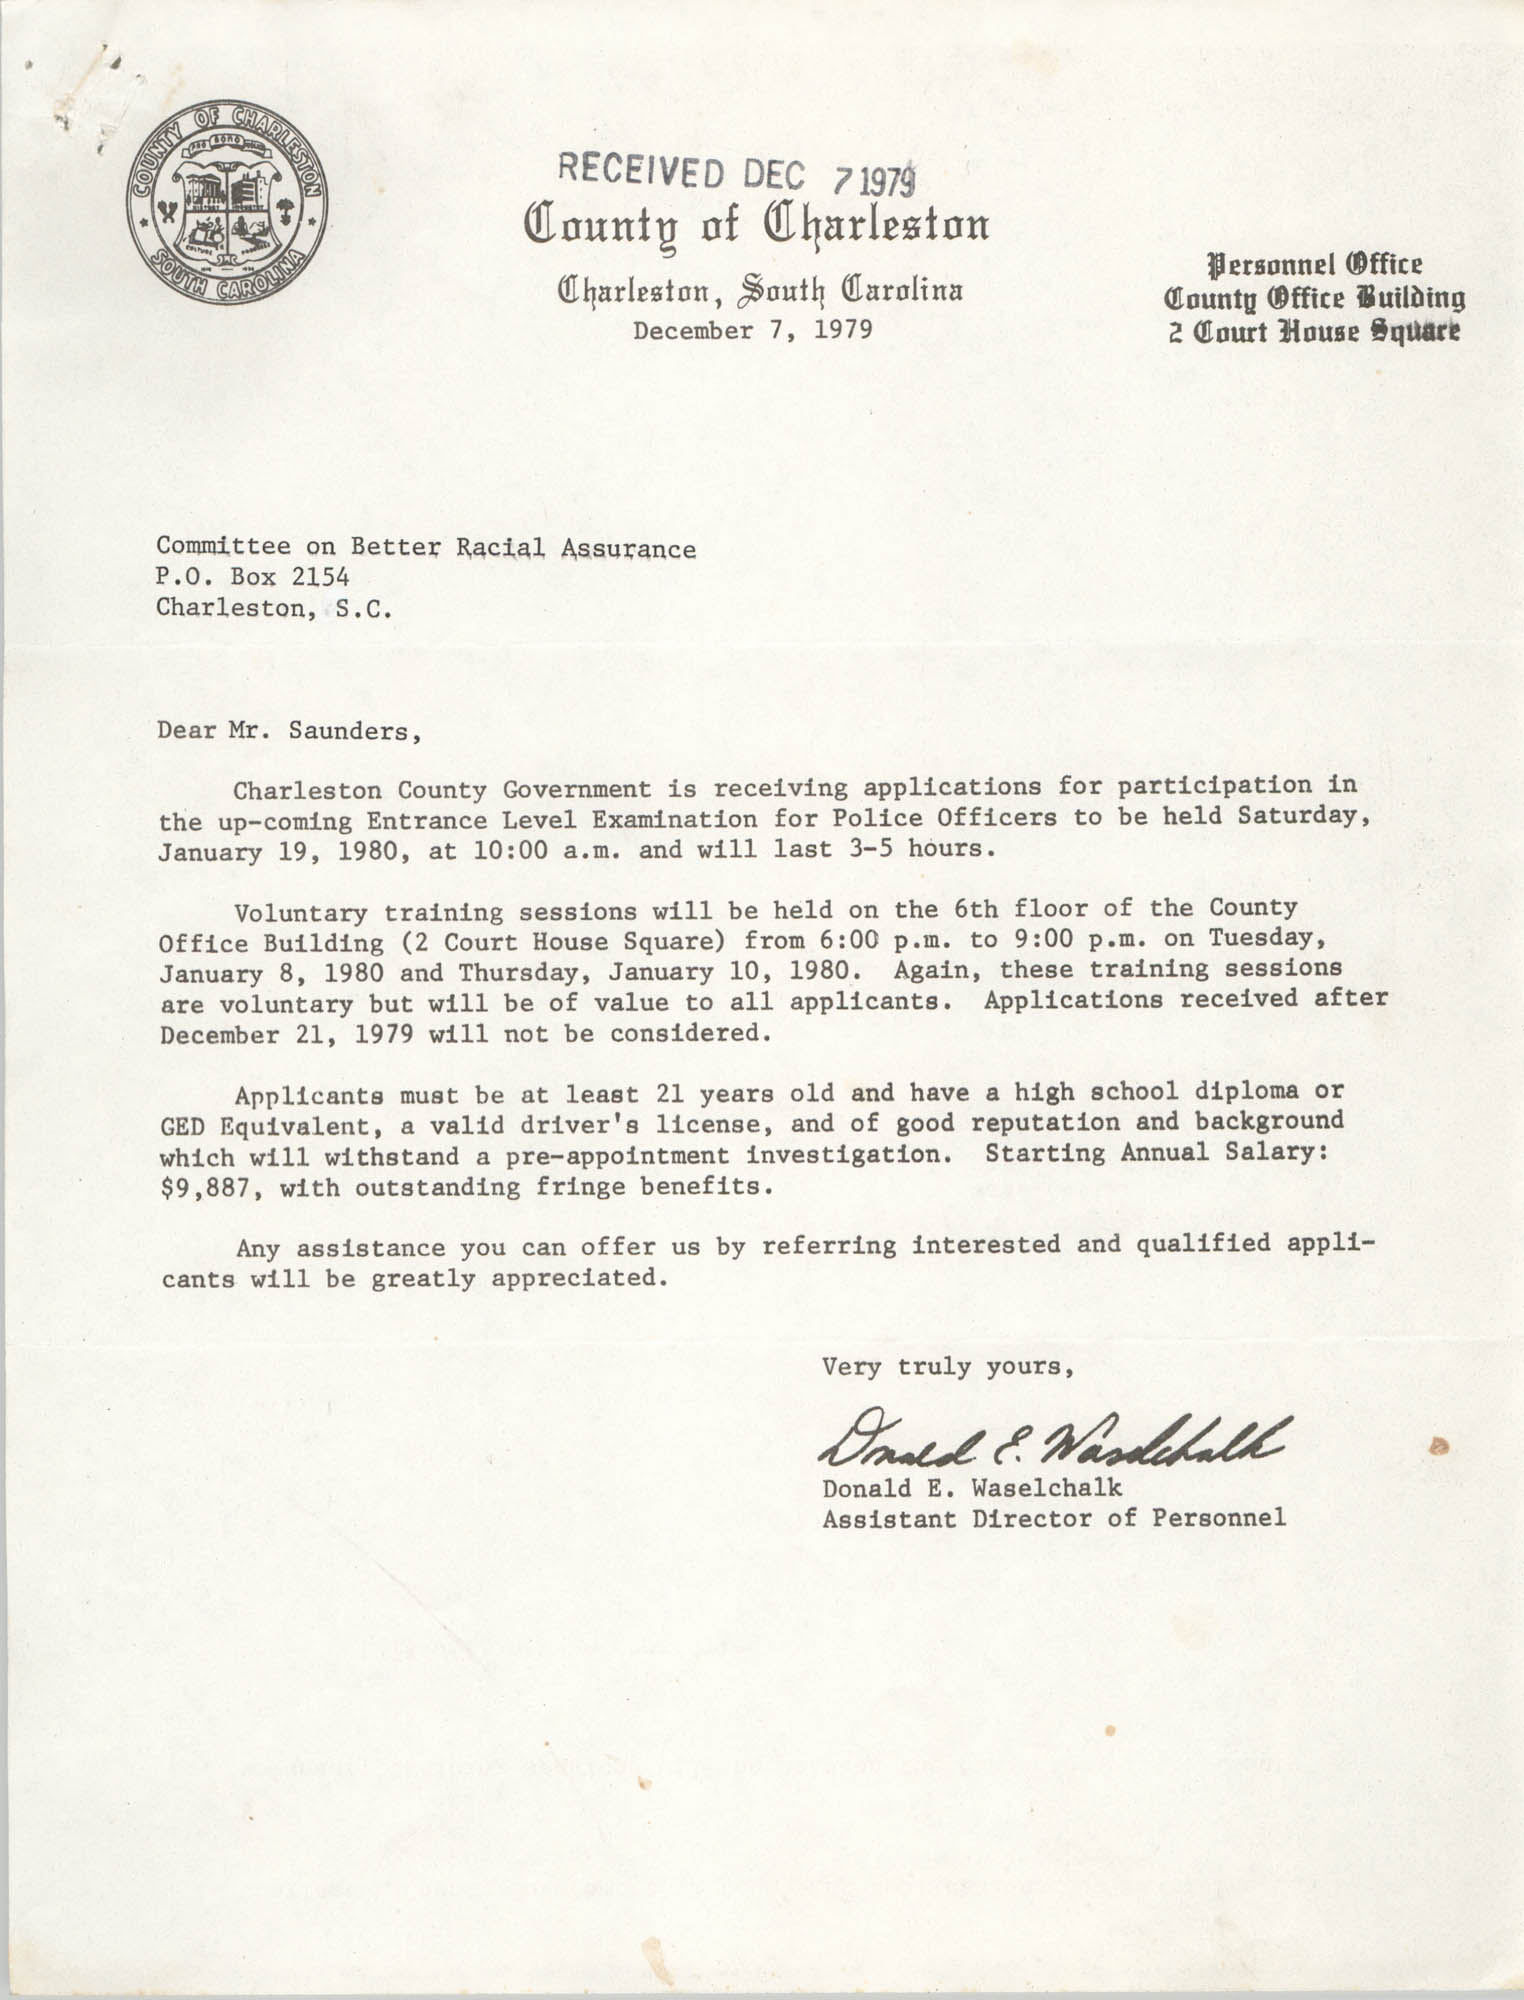 Letter from Donald E. Waselchalk to William Saunders, December 7, 1979